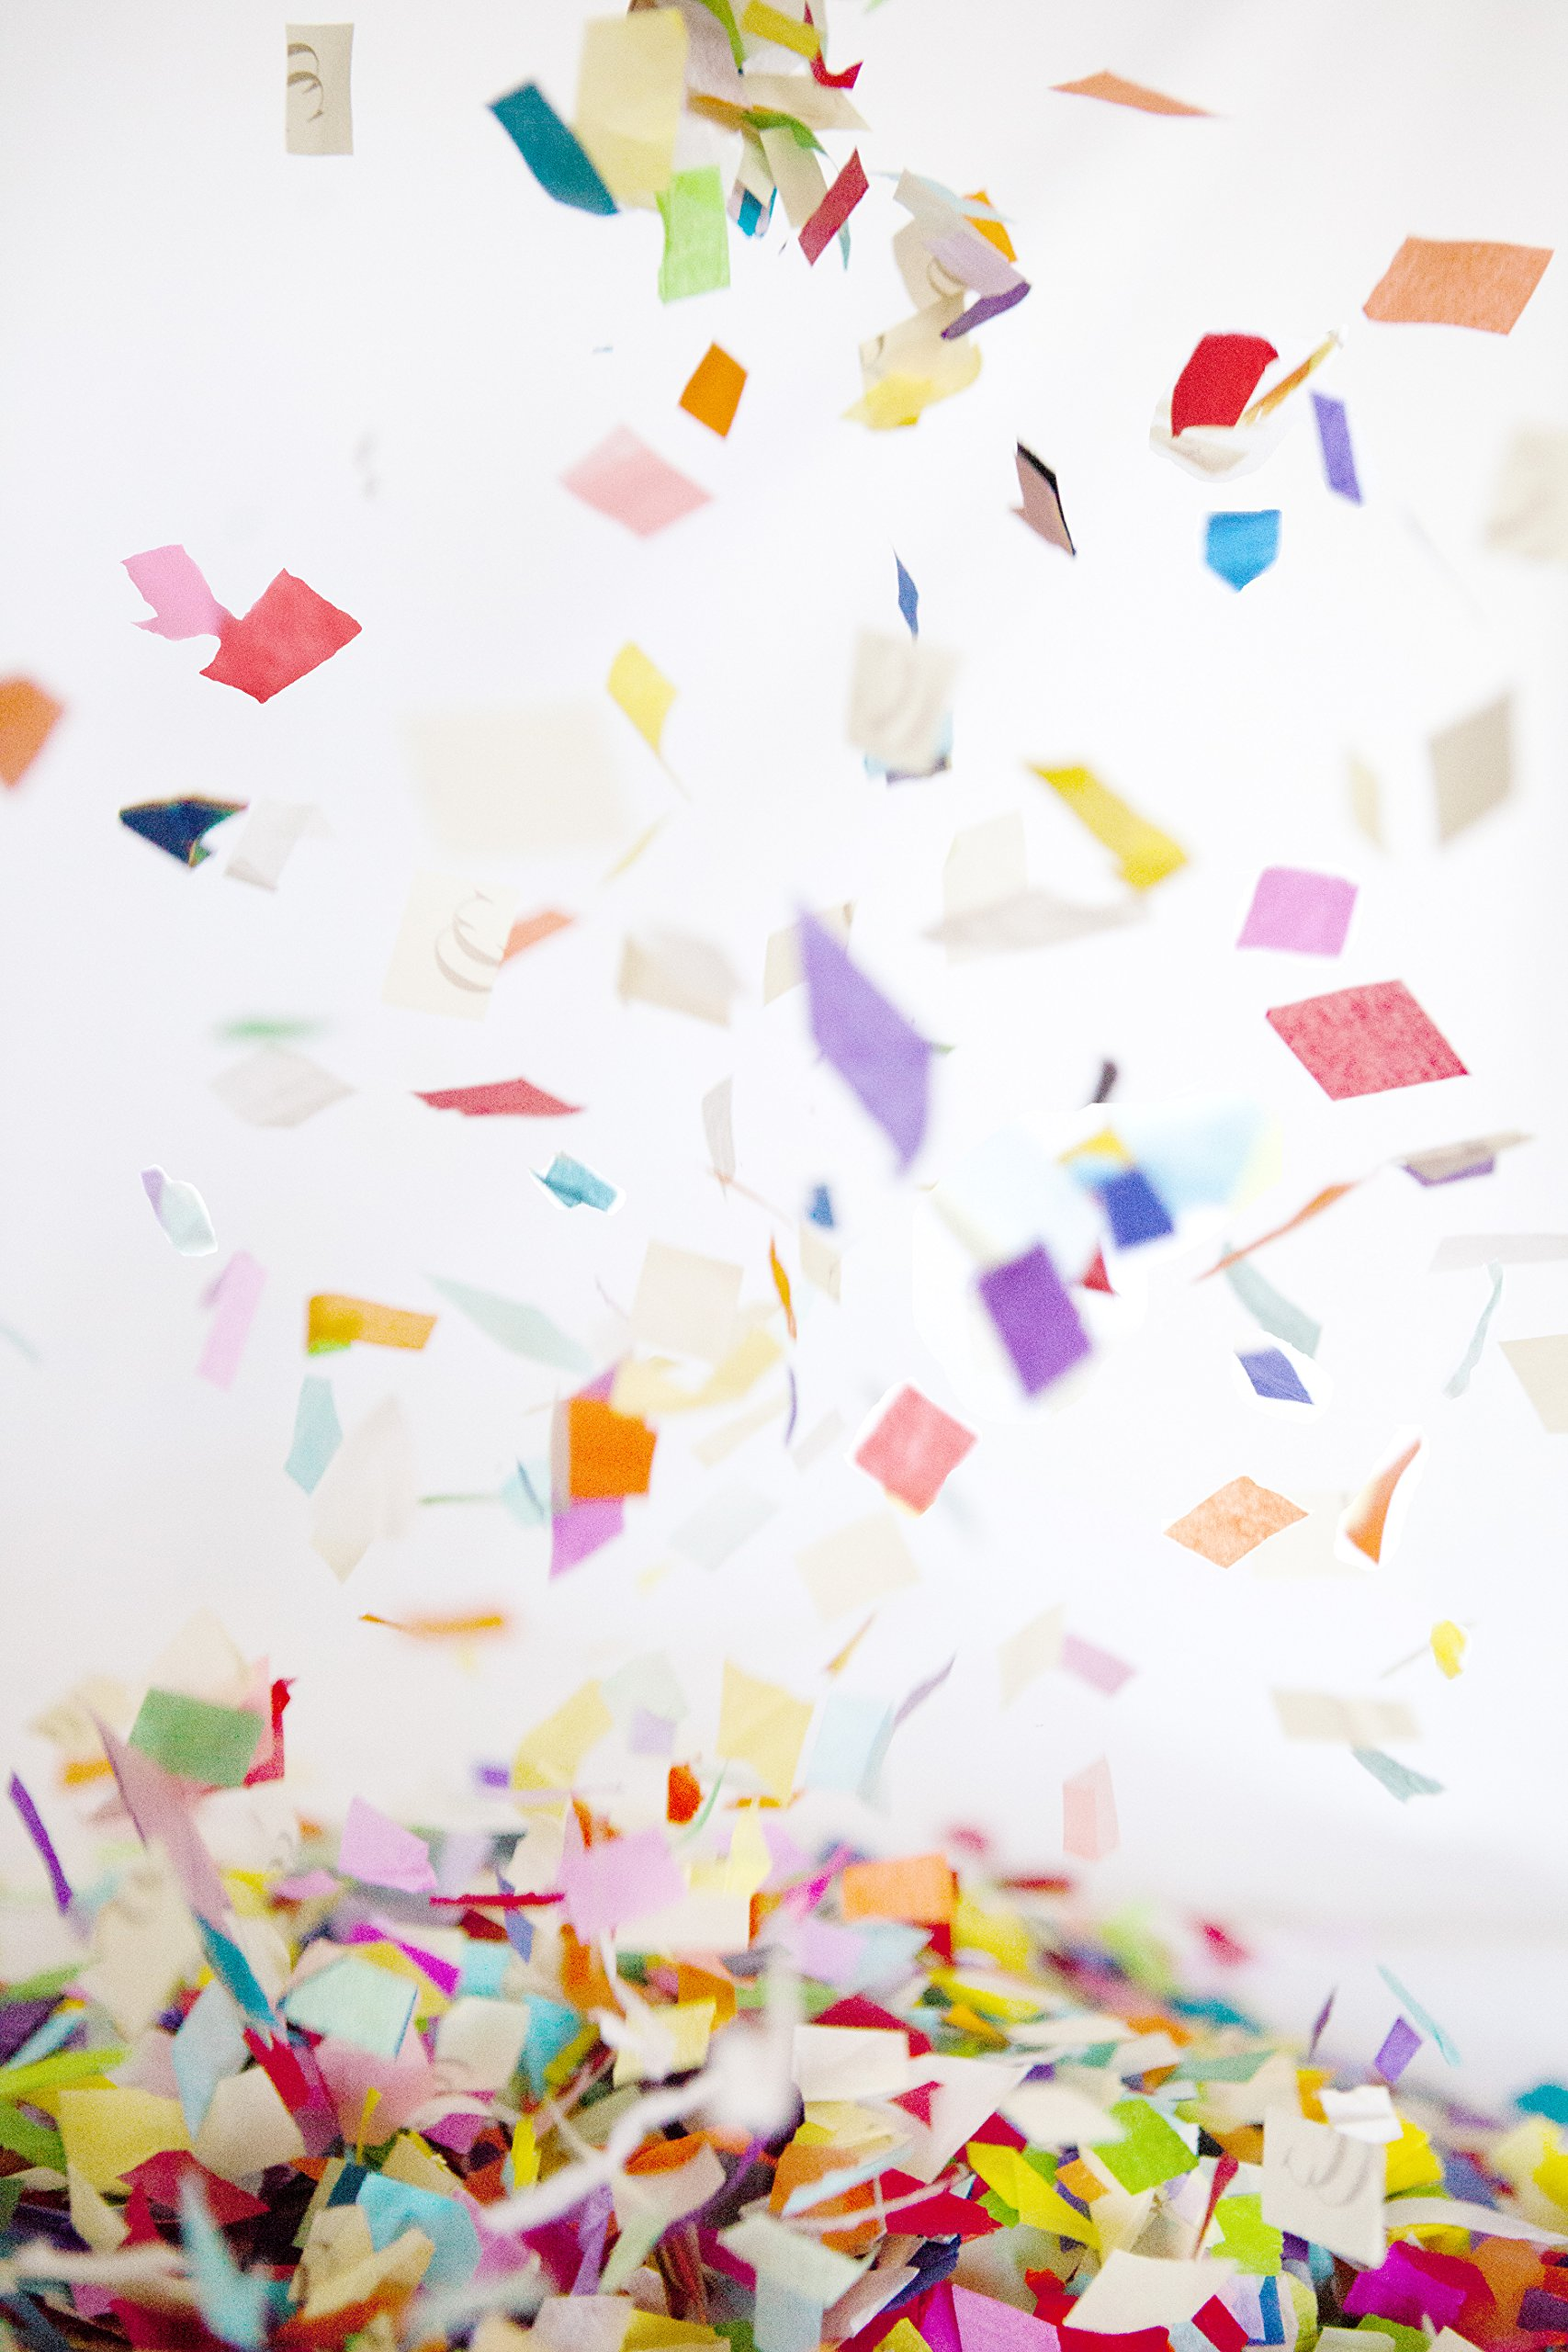 Colorful Rainbow Shredded Tissue Paper Confetti, bulk jumbo bag. Made from recycled paper. For birthdays, engagements, and surprise parties.